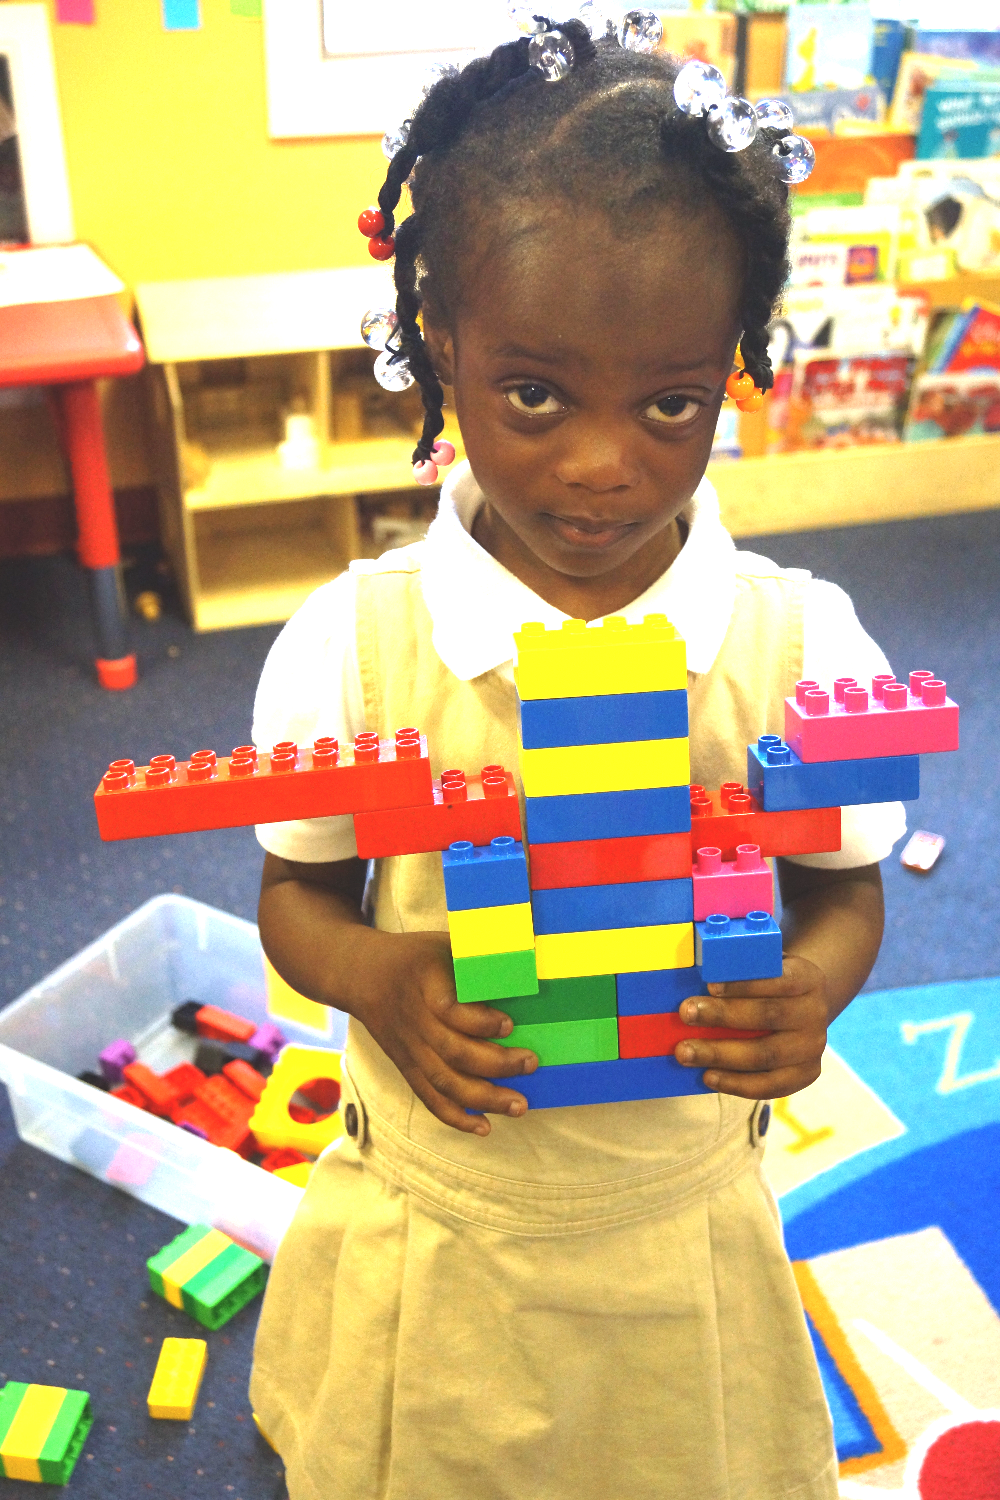 Lego Education helps me solve new math problems!_edited